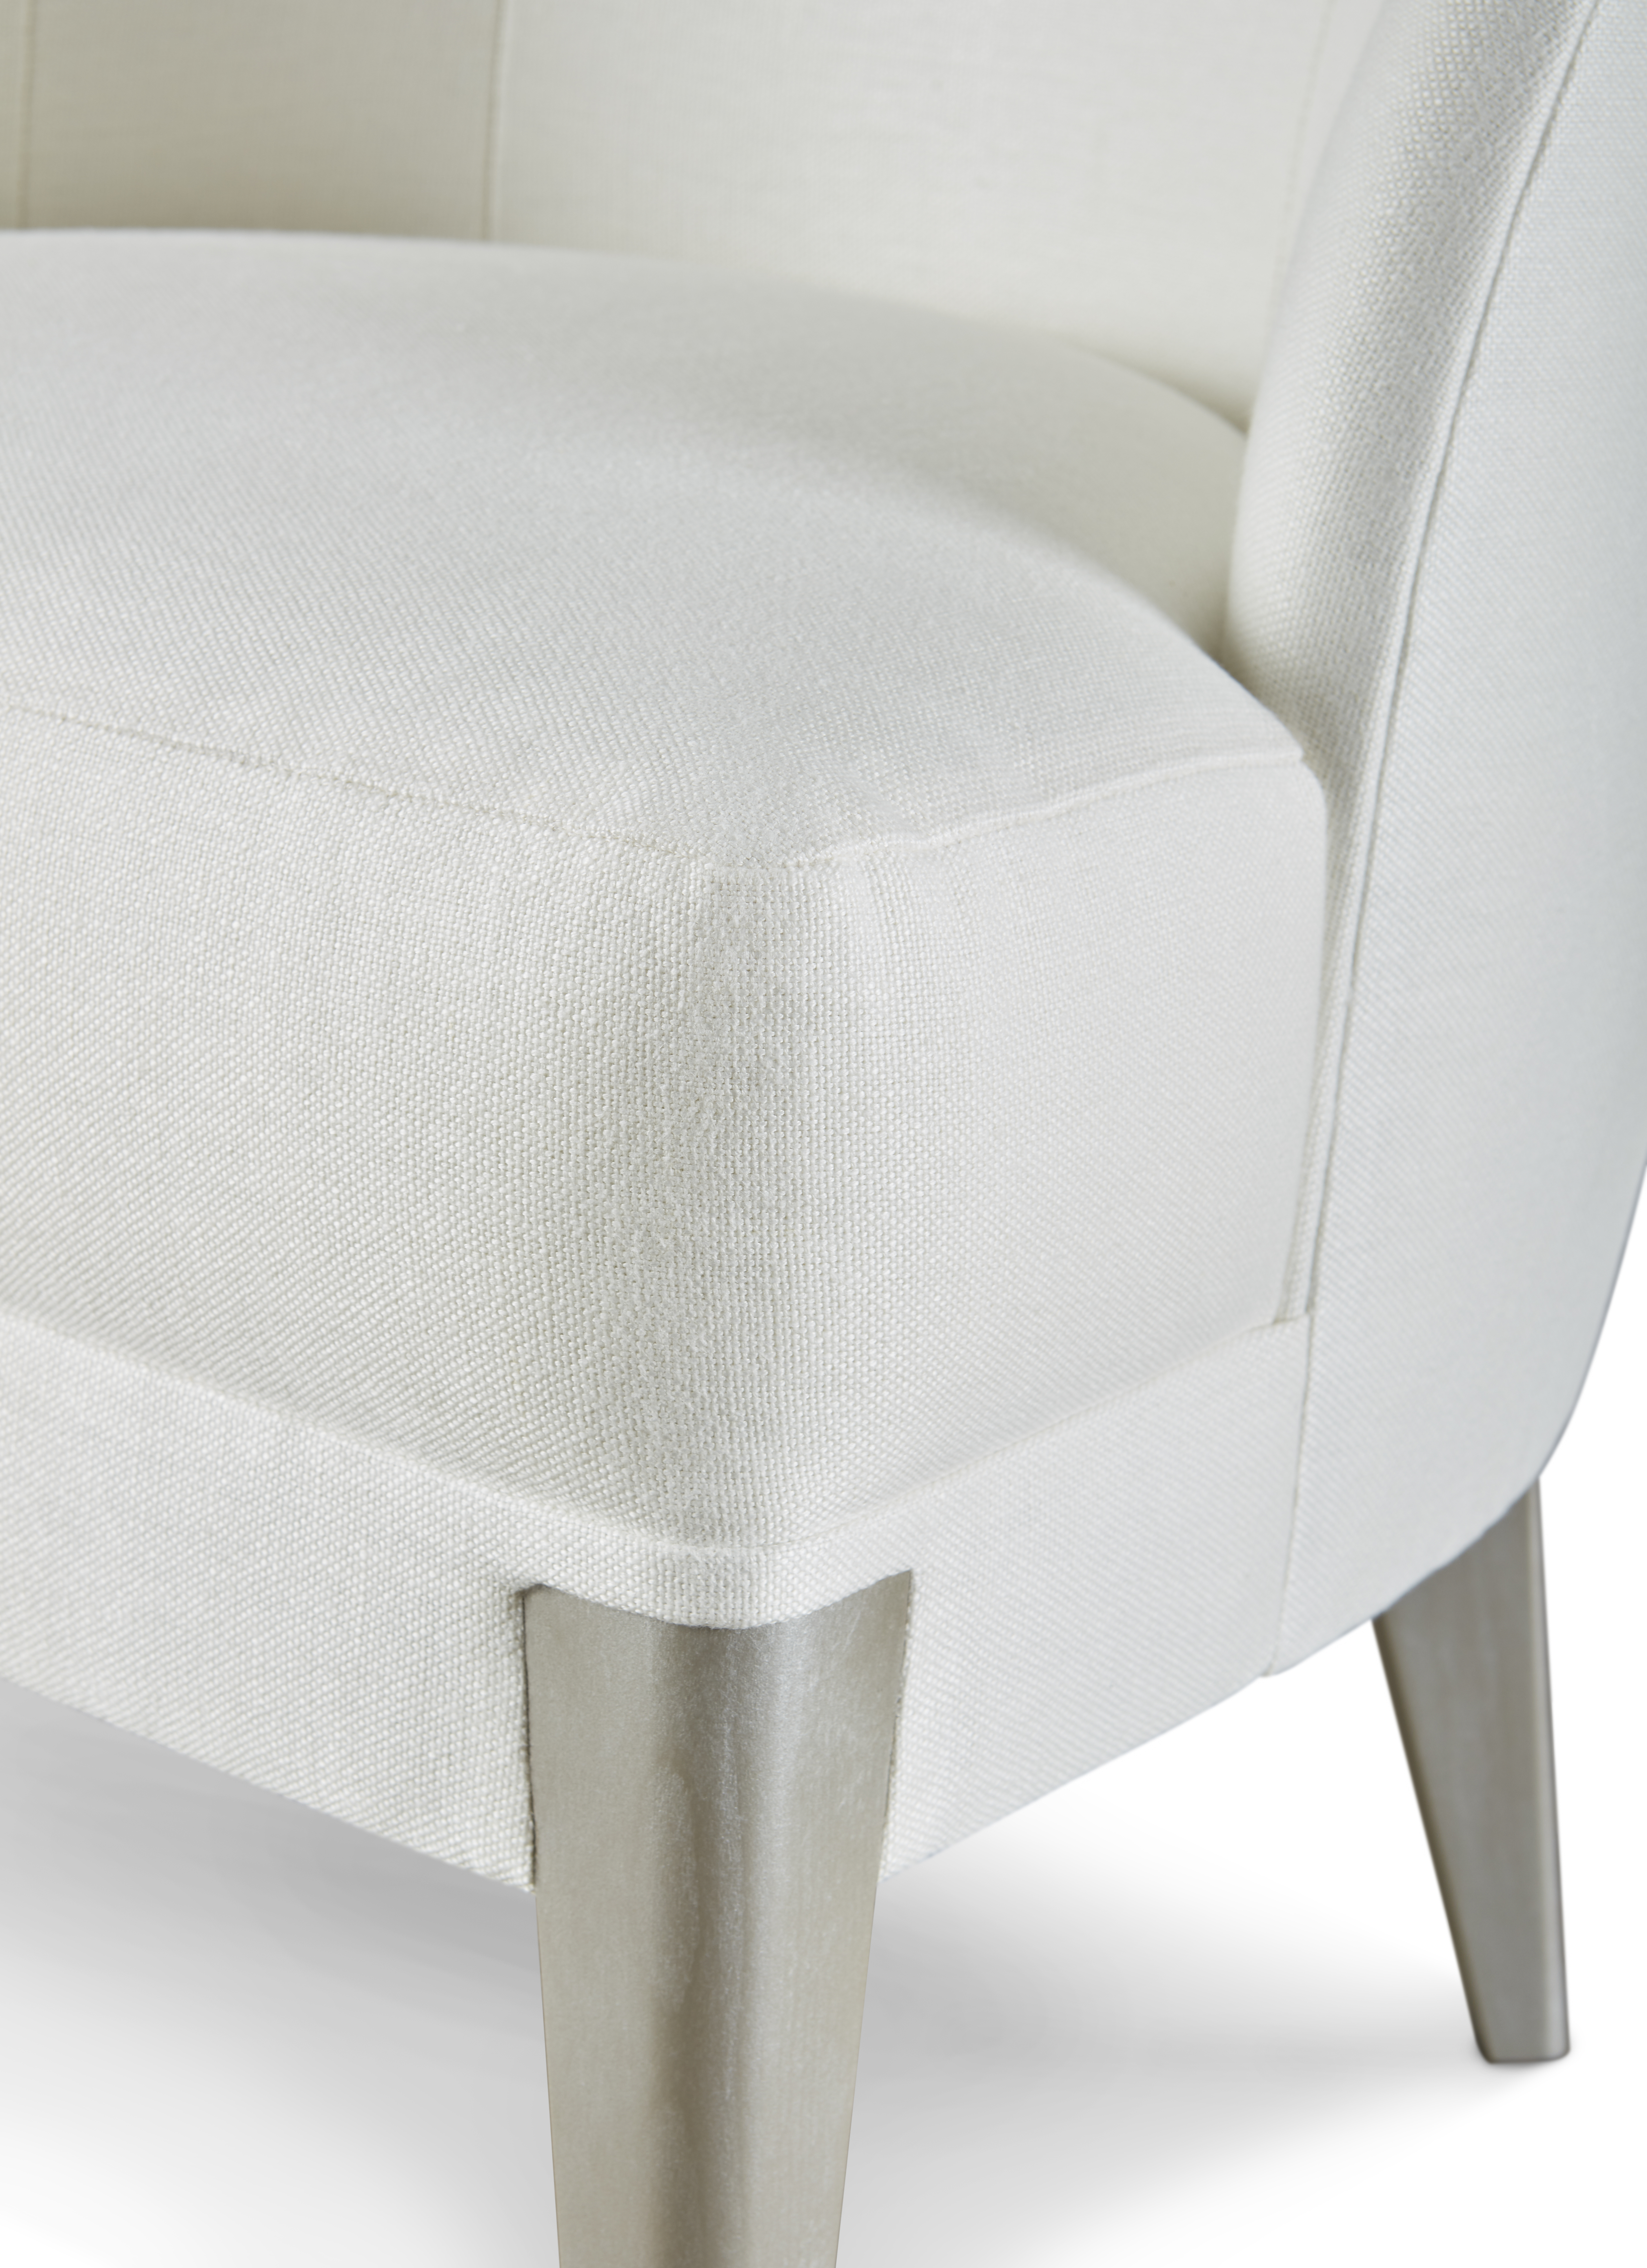 Baker_products_WNWN_sophie_chair_BAU3306c_DETAIL